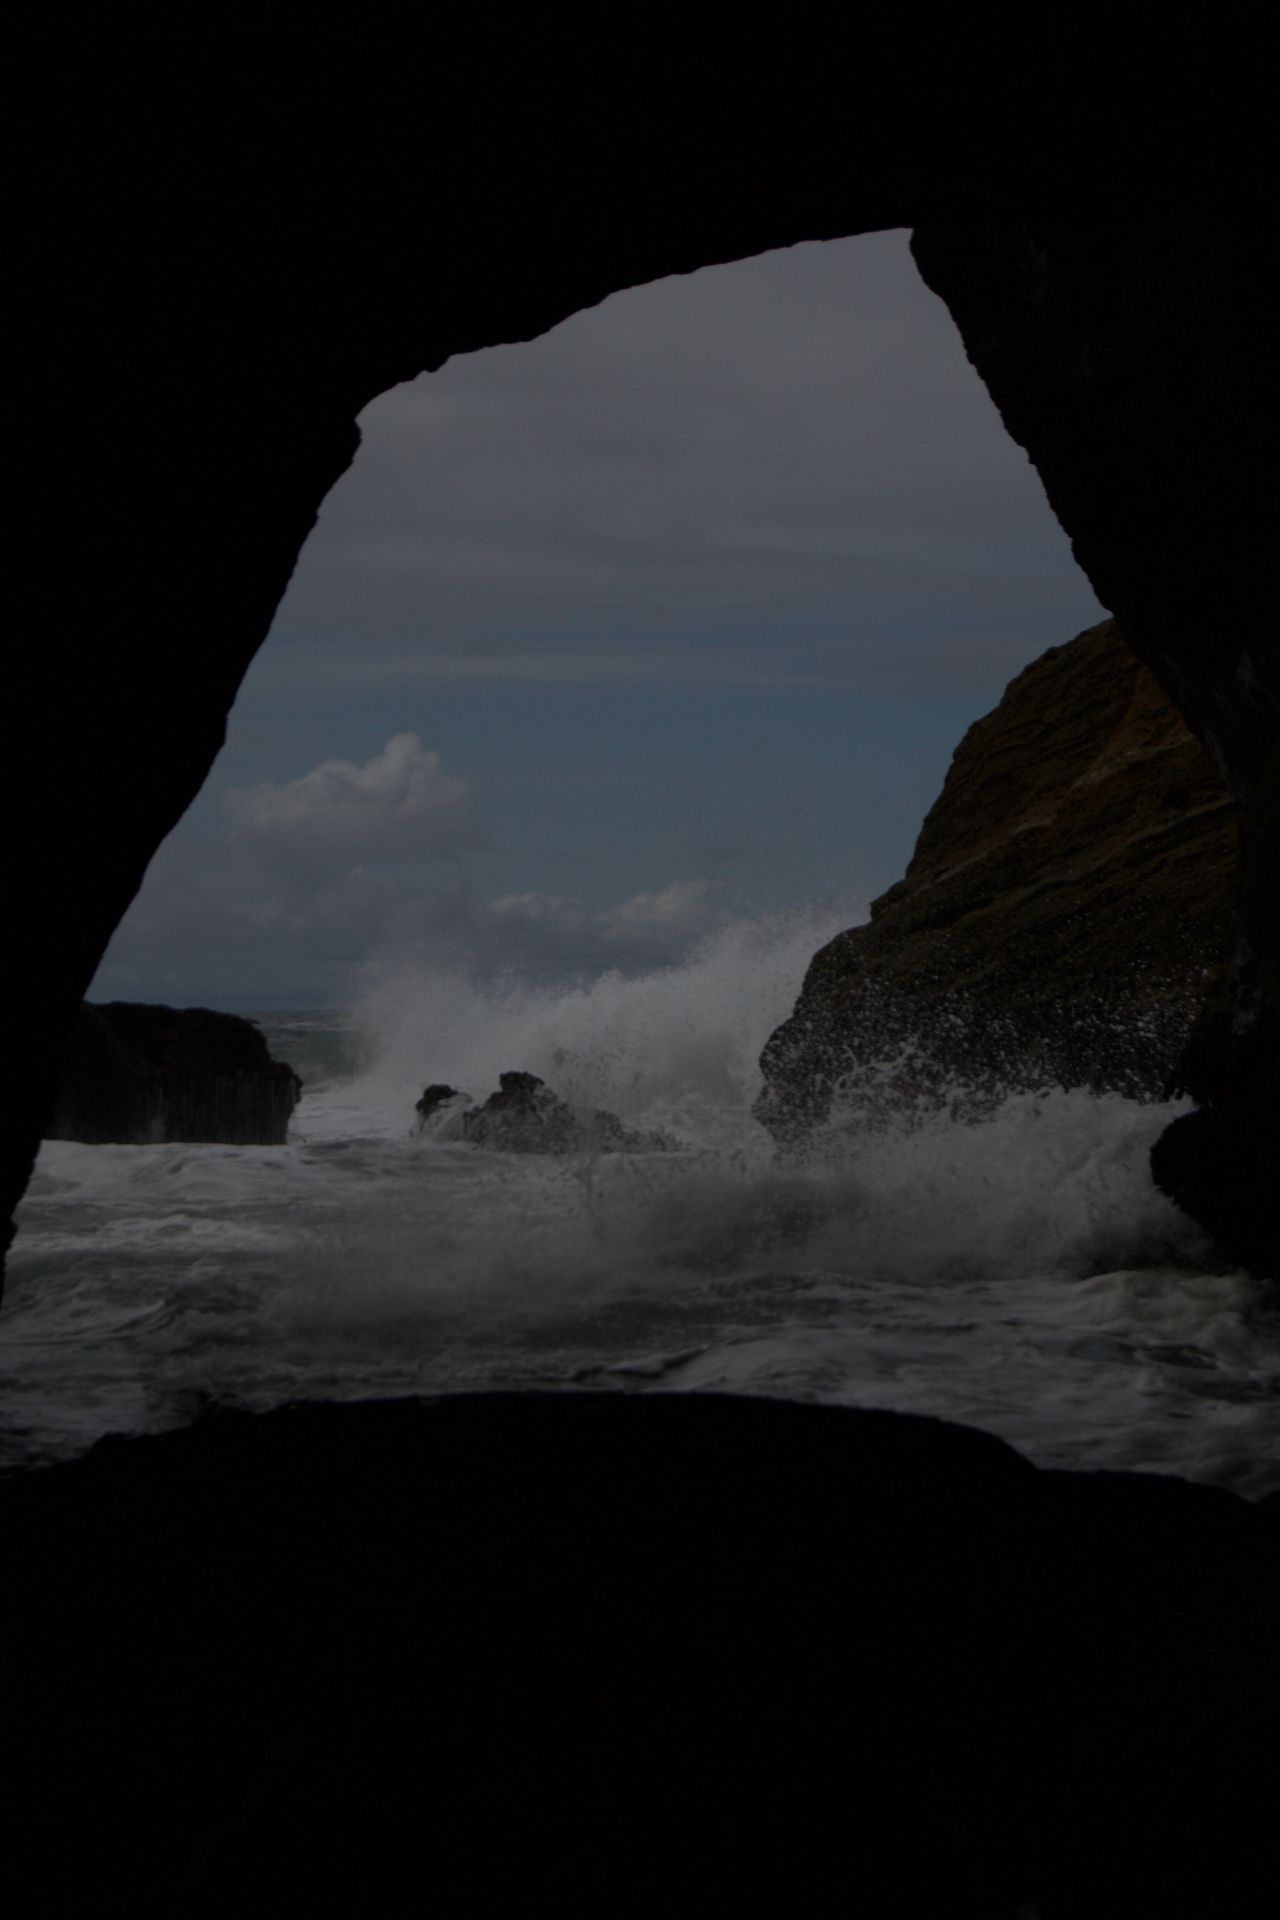 A Window, the Magic of the Sea Beauty In Nature Nature Power In Nature Scenics Water Sky No People Sea EyemeVision The Great Outdoors - 2017 EyeEm Awards EyeEmNewHere Beauty In Nature Beachphotography Power Of The Sea Power Of Motion Wave Outdoors Day